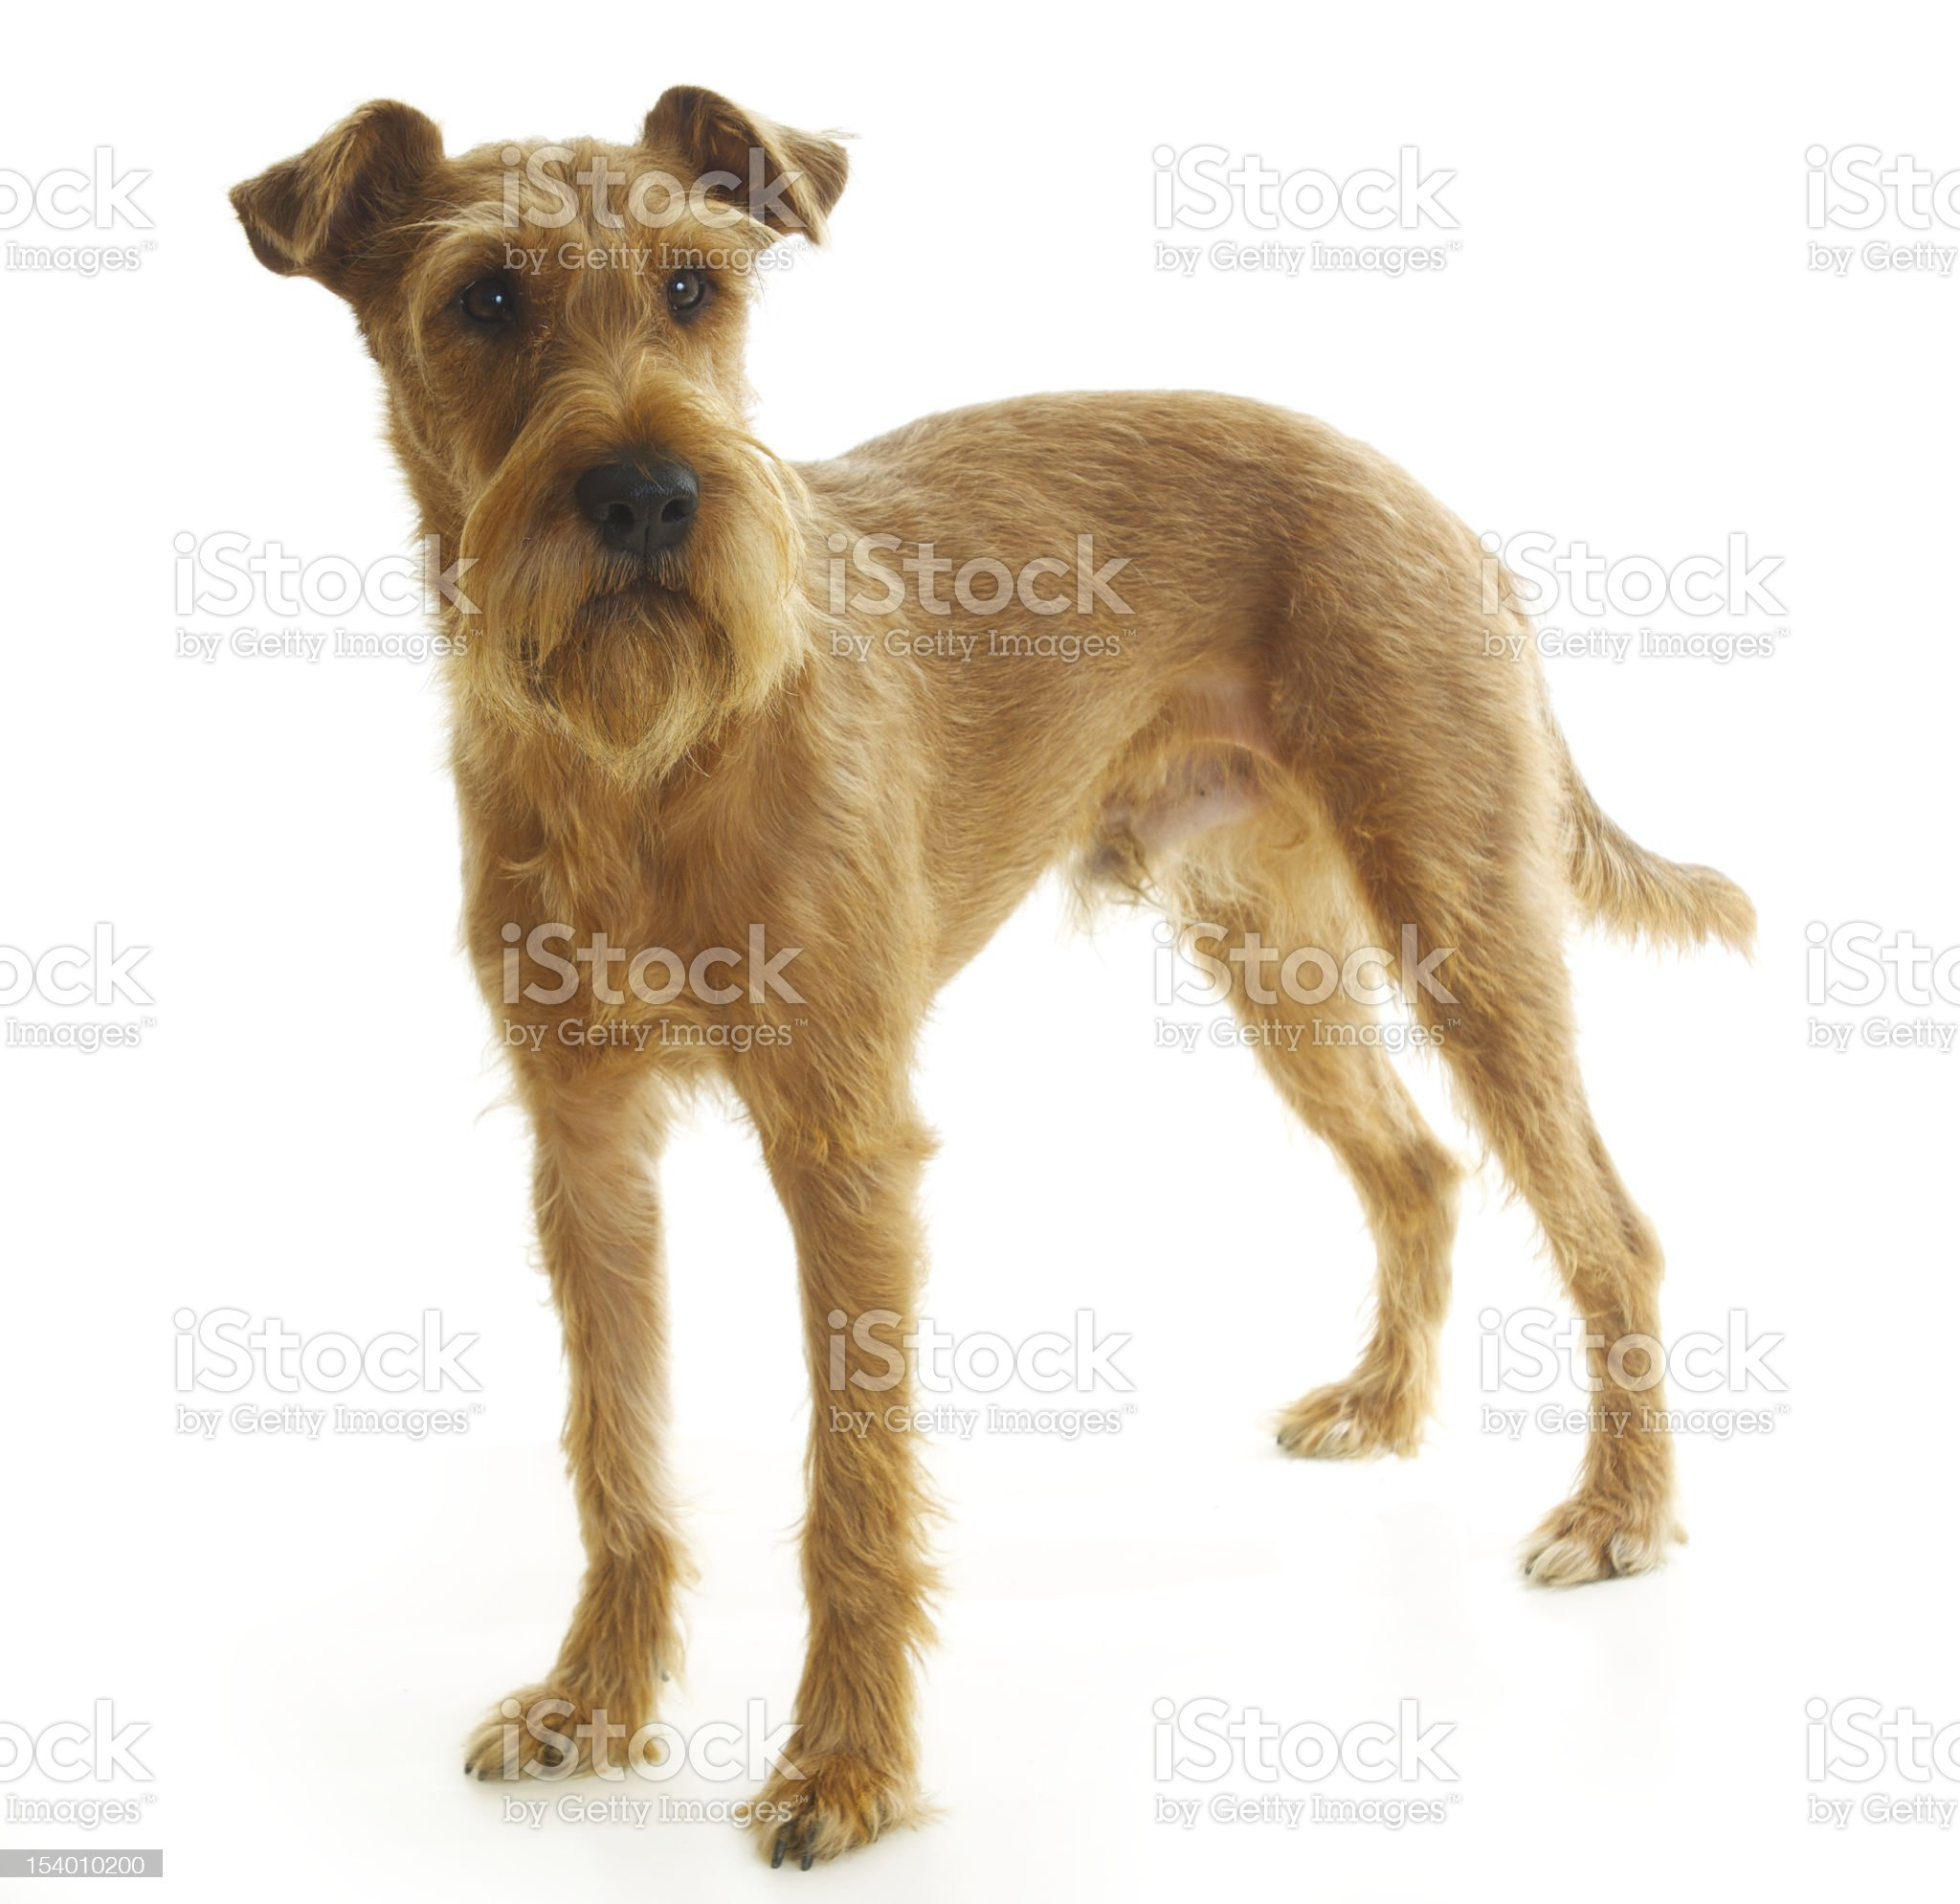 Irish terrier standing on a white background and looking royalty-free stock photo